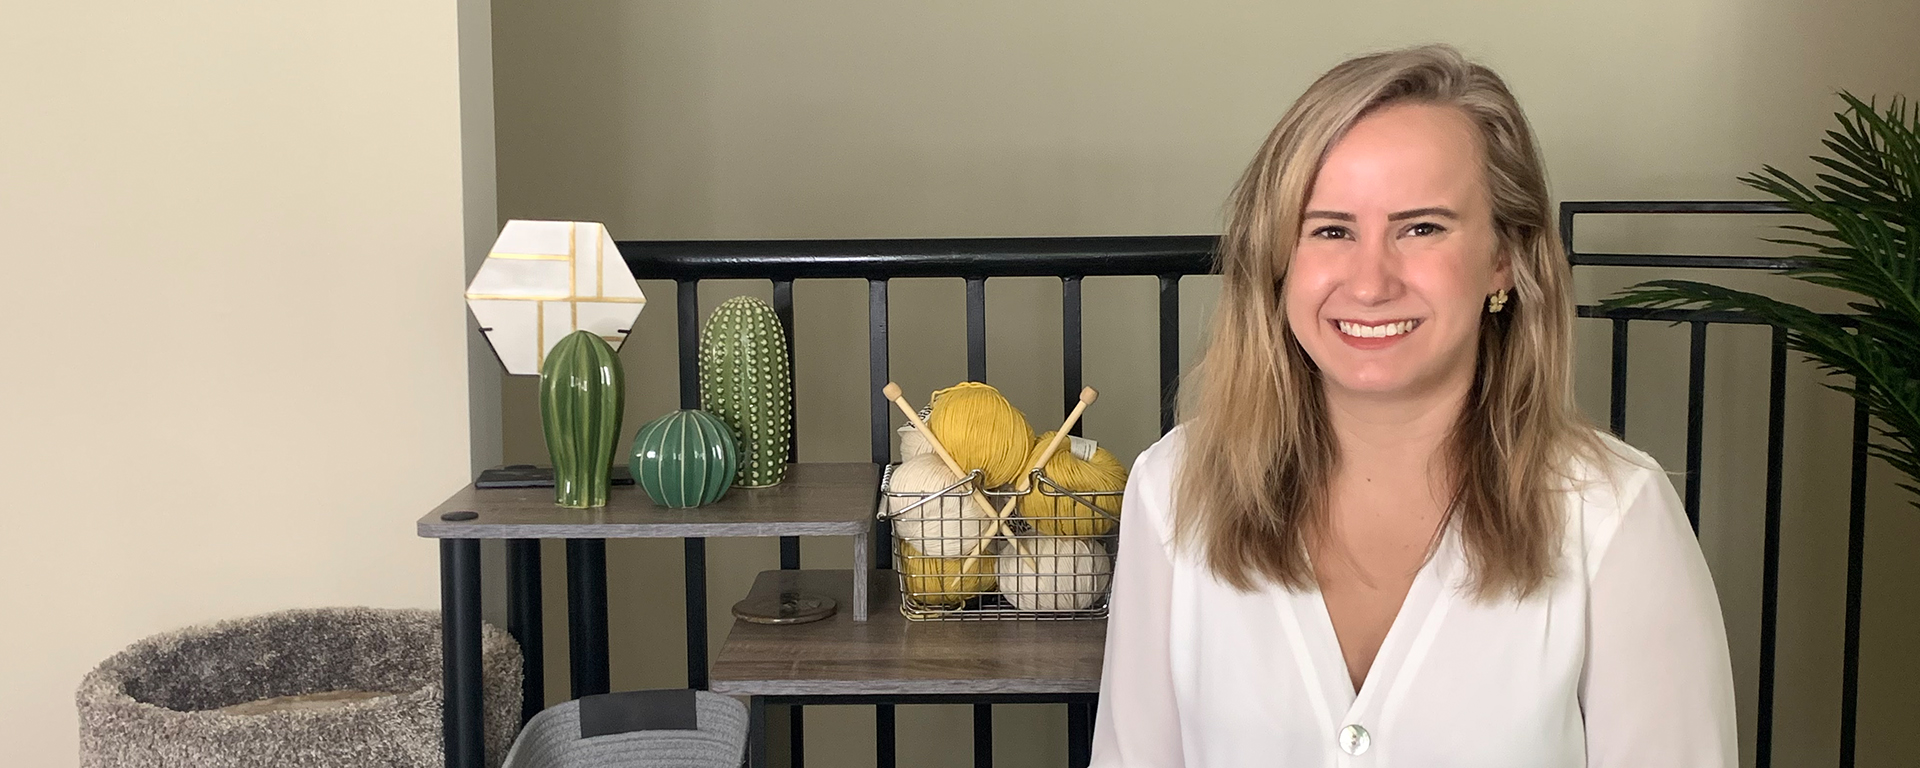 Ari, Capital One product manager, sits in her home and talks about how to be a successful product manager